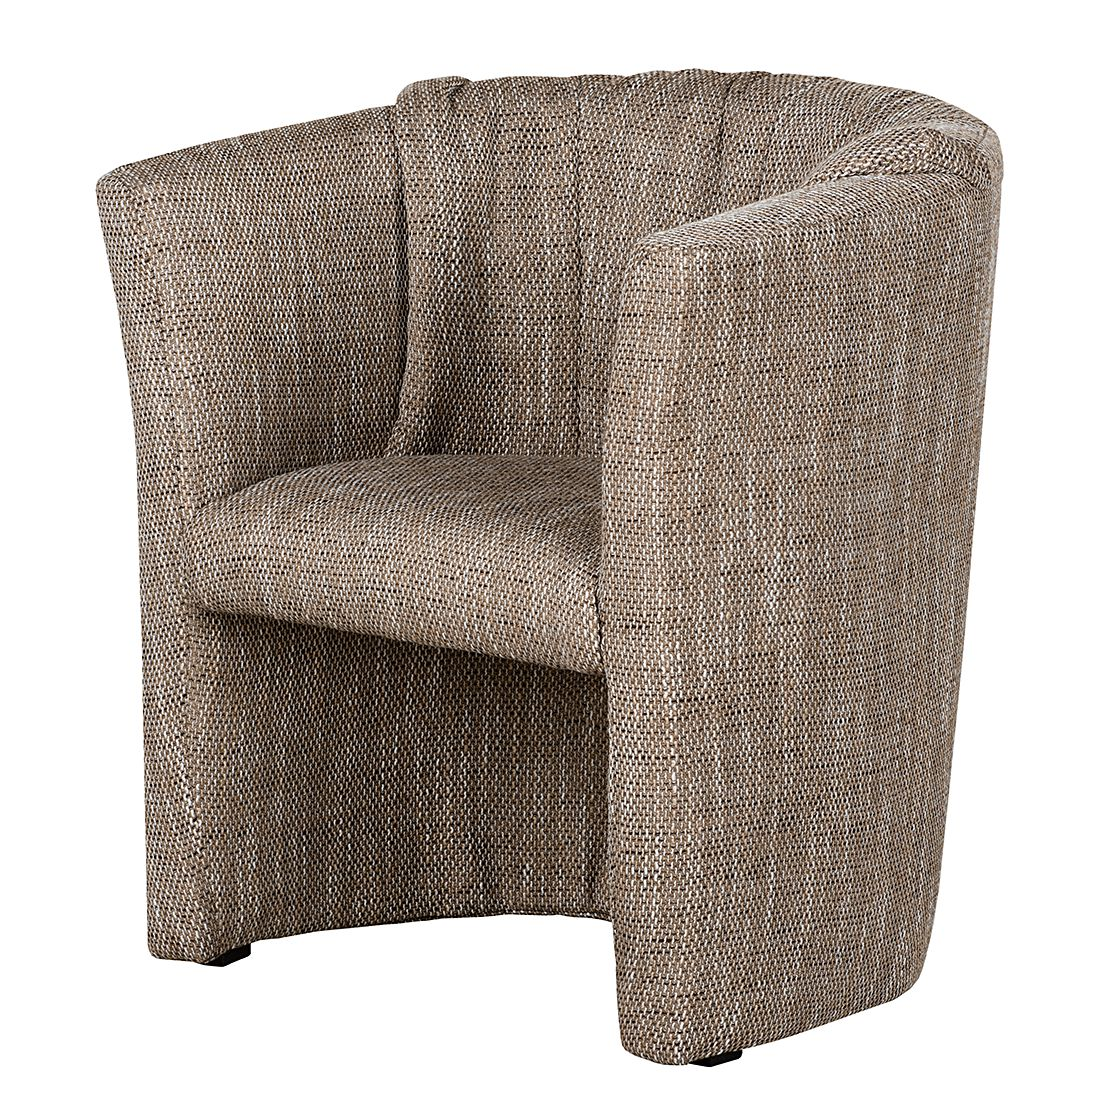 Home 24 - Fauteuil rex - tissu structuré cappuccino, mooved